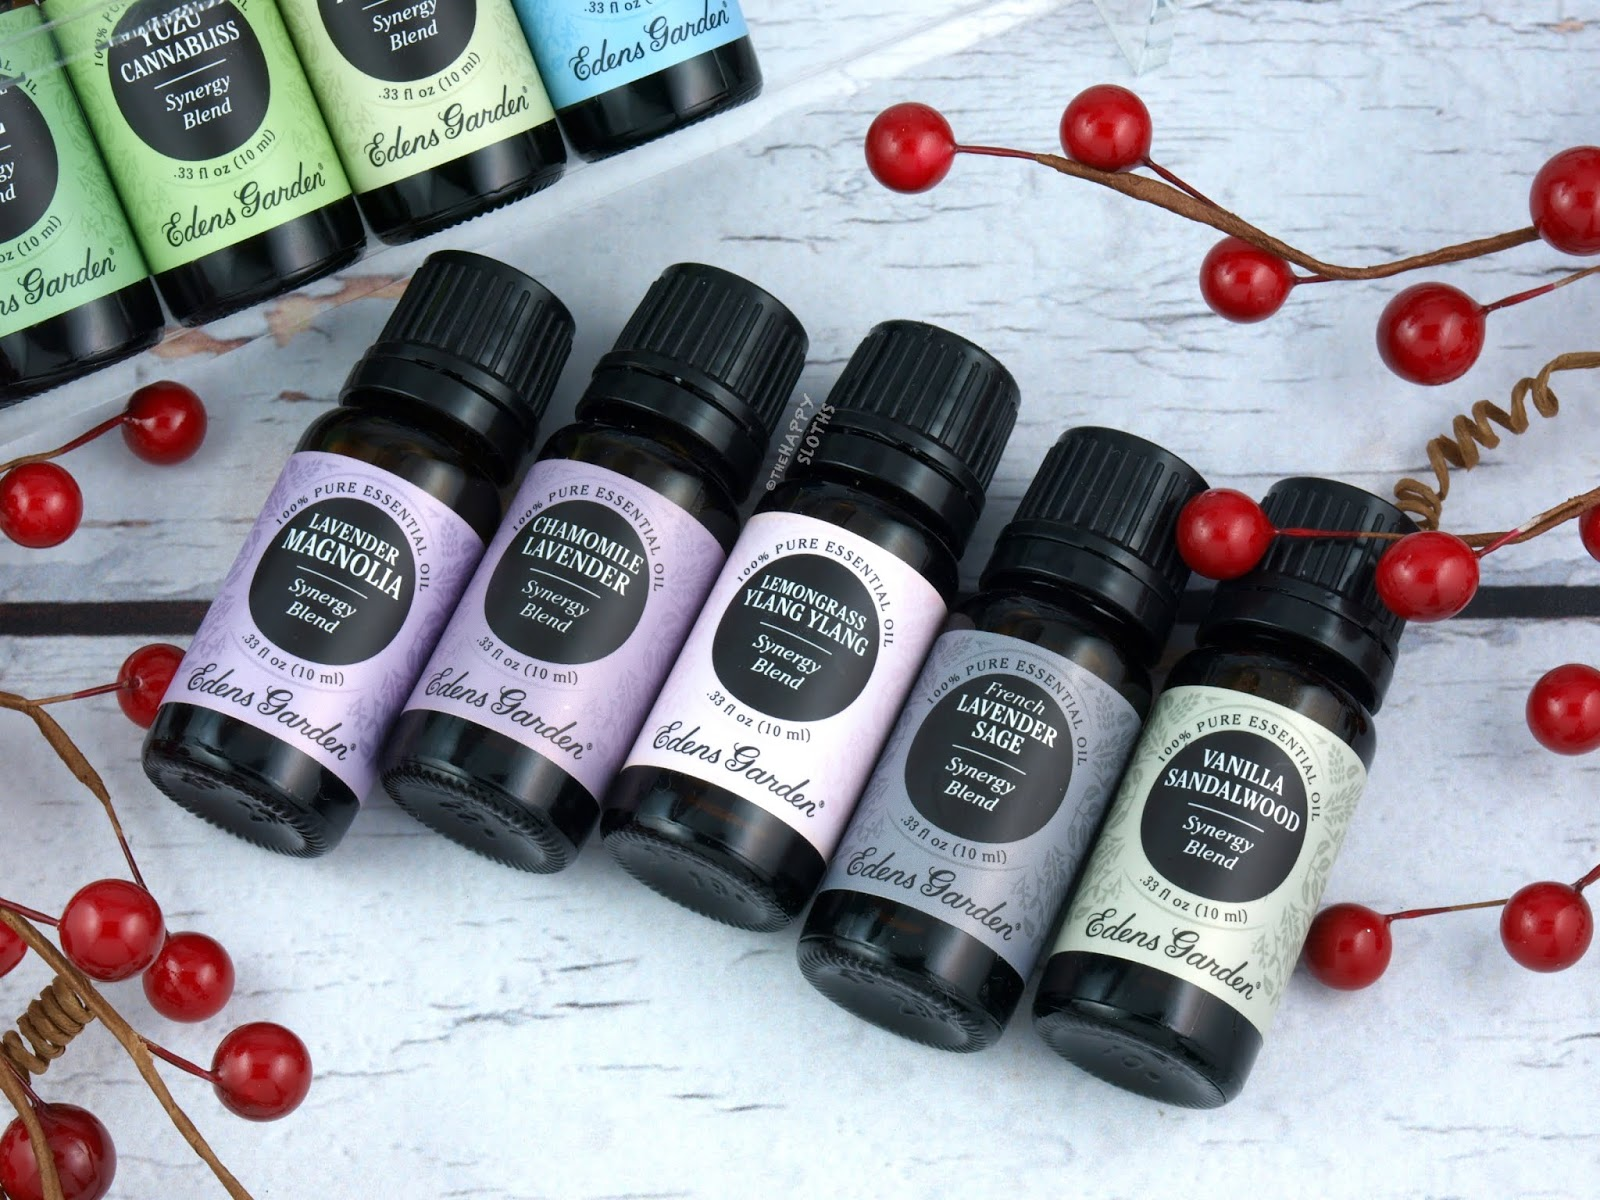 Edens Garden New Essential Oil Synergy Blends Essential Oil Candles Review The Happy Sloths Beauty Makeup And Skincare Blog With Reviews And Swatches